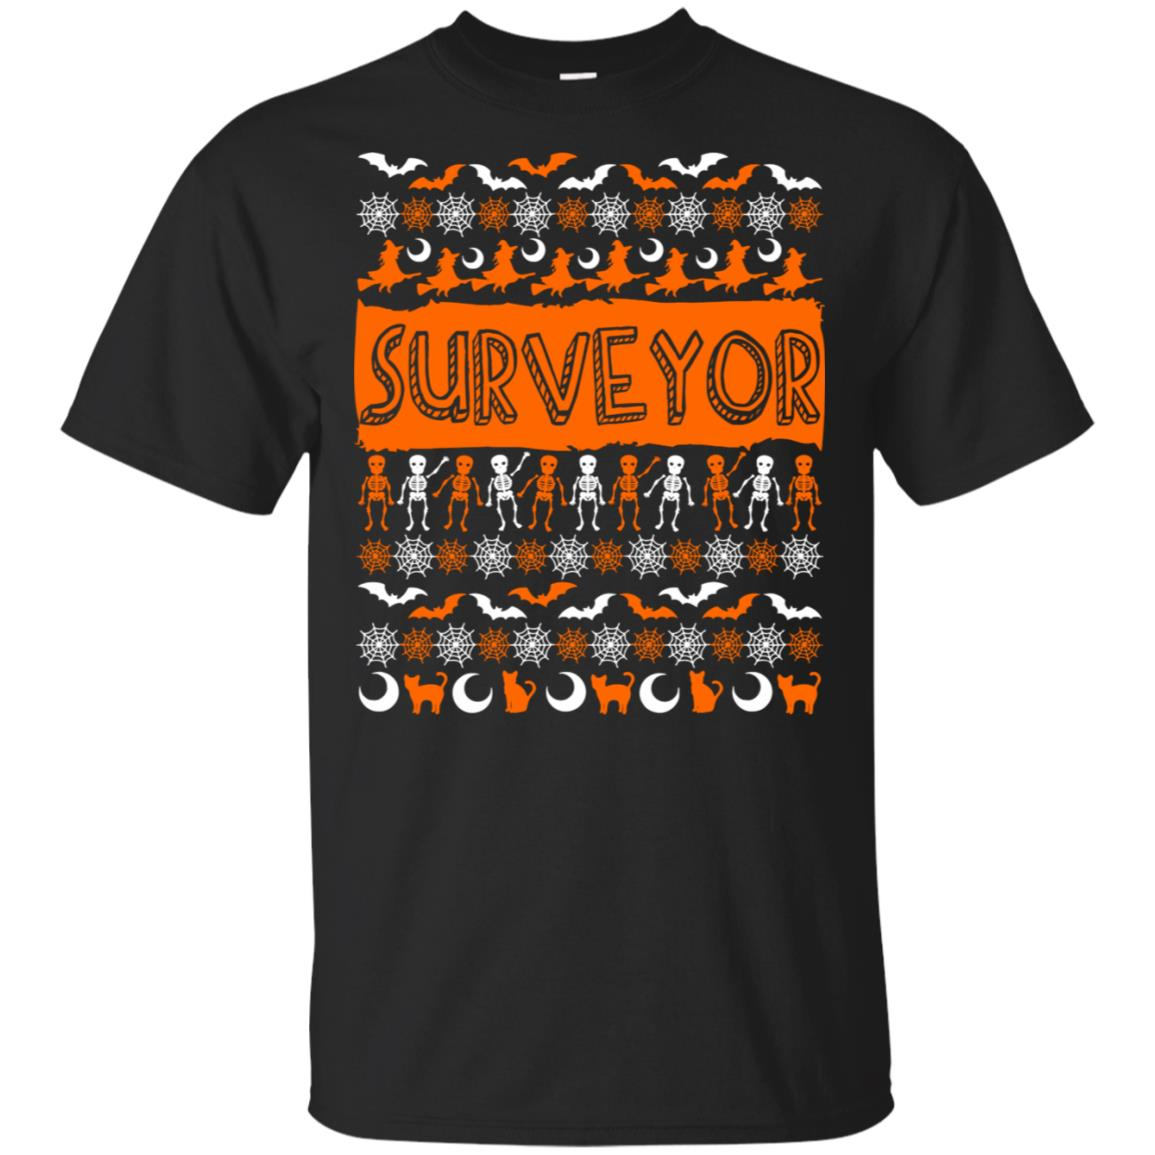 Surveyor Ugly Halloween Unisex Short Sleeve